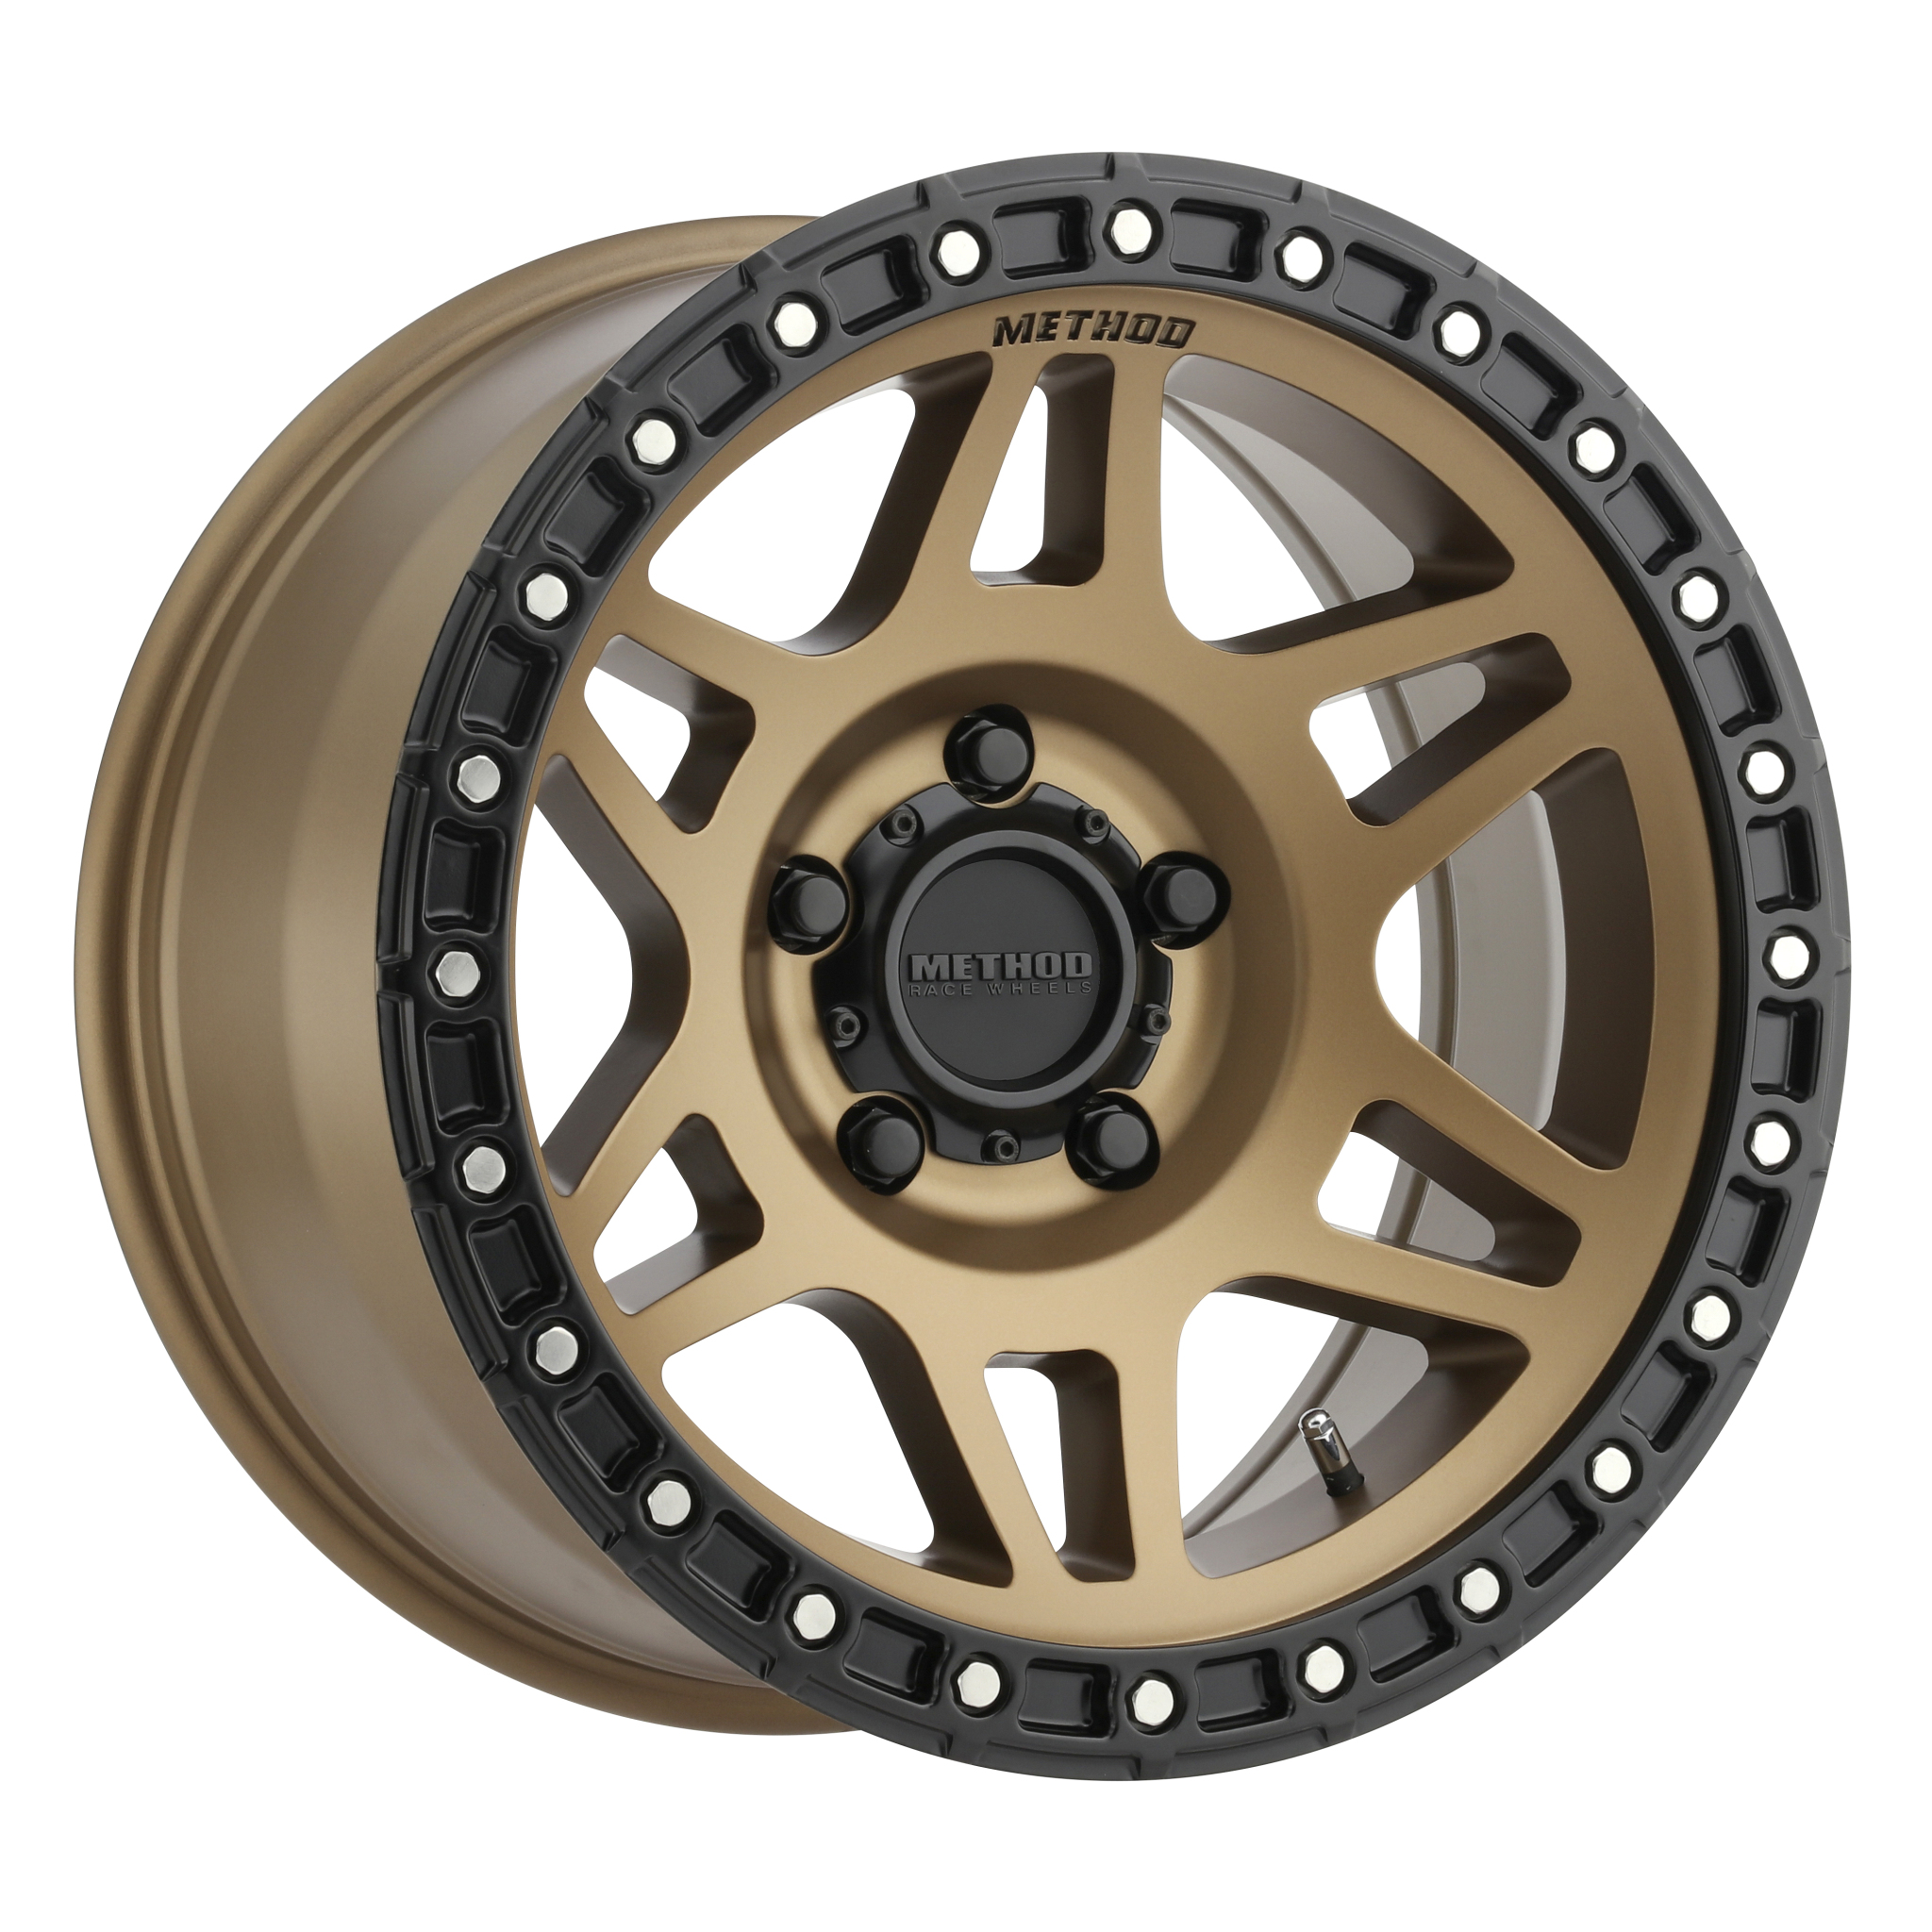 Method 312, 18x9, +18mm Offset, 5x150, 110.5mm Centerbore, Method Bronze/Black Street Loc